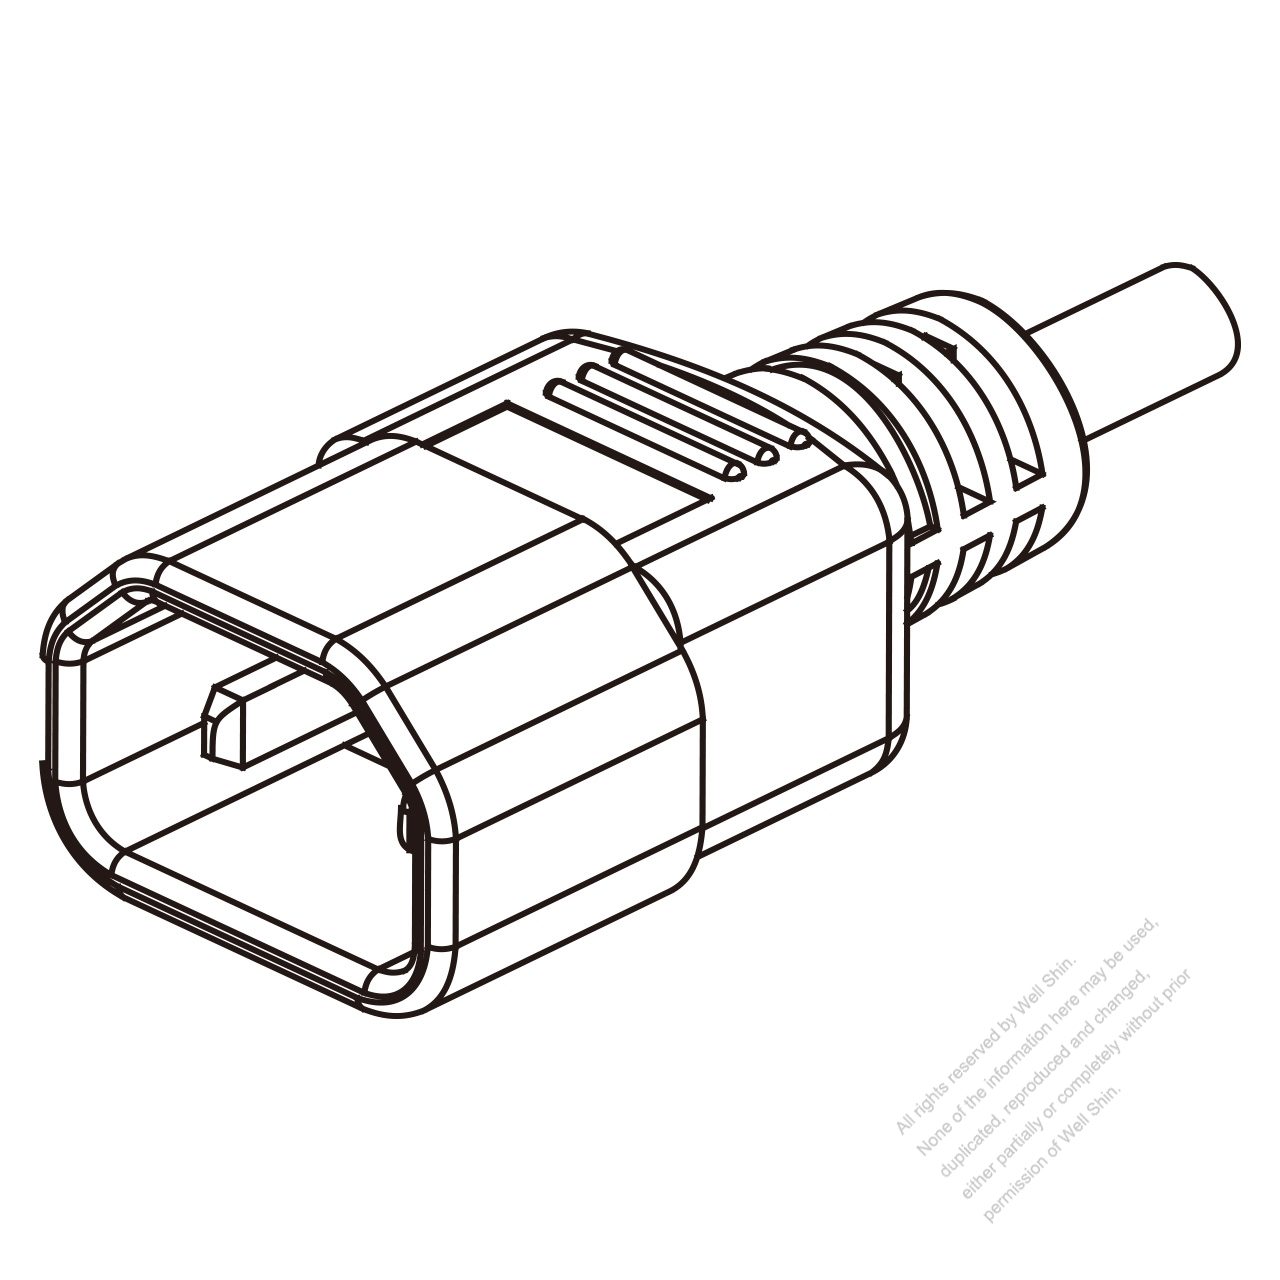 hight resolution of iec 320 sheet g plug connectors 3 pin angle 10a 13a 15a